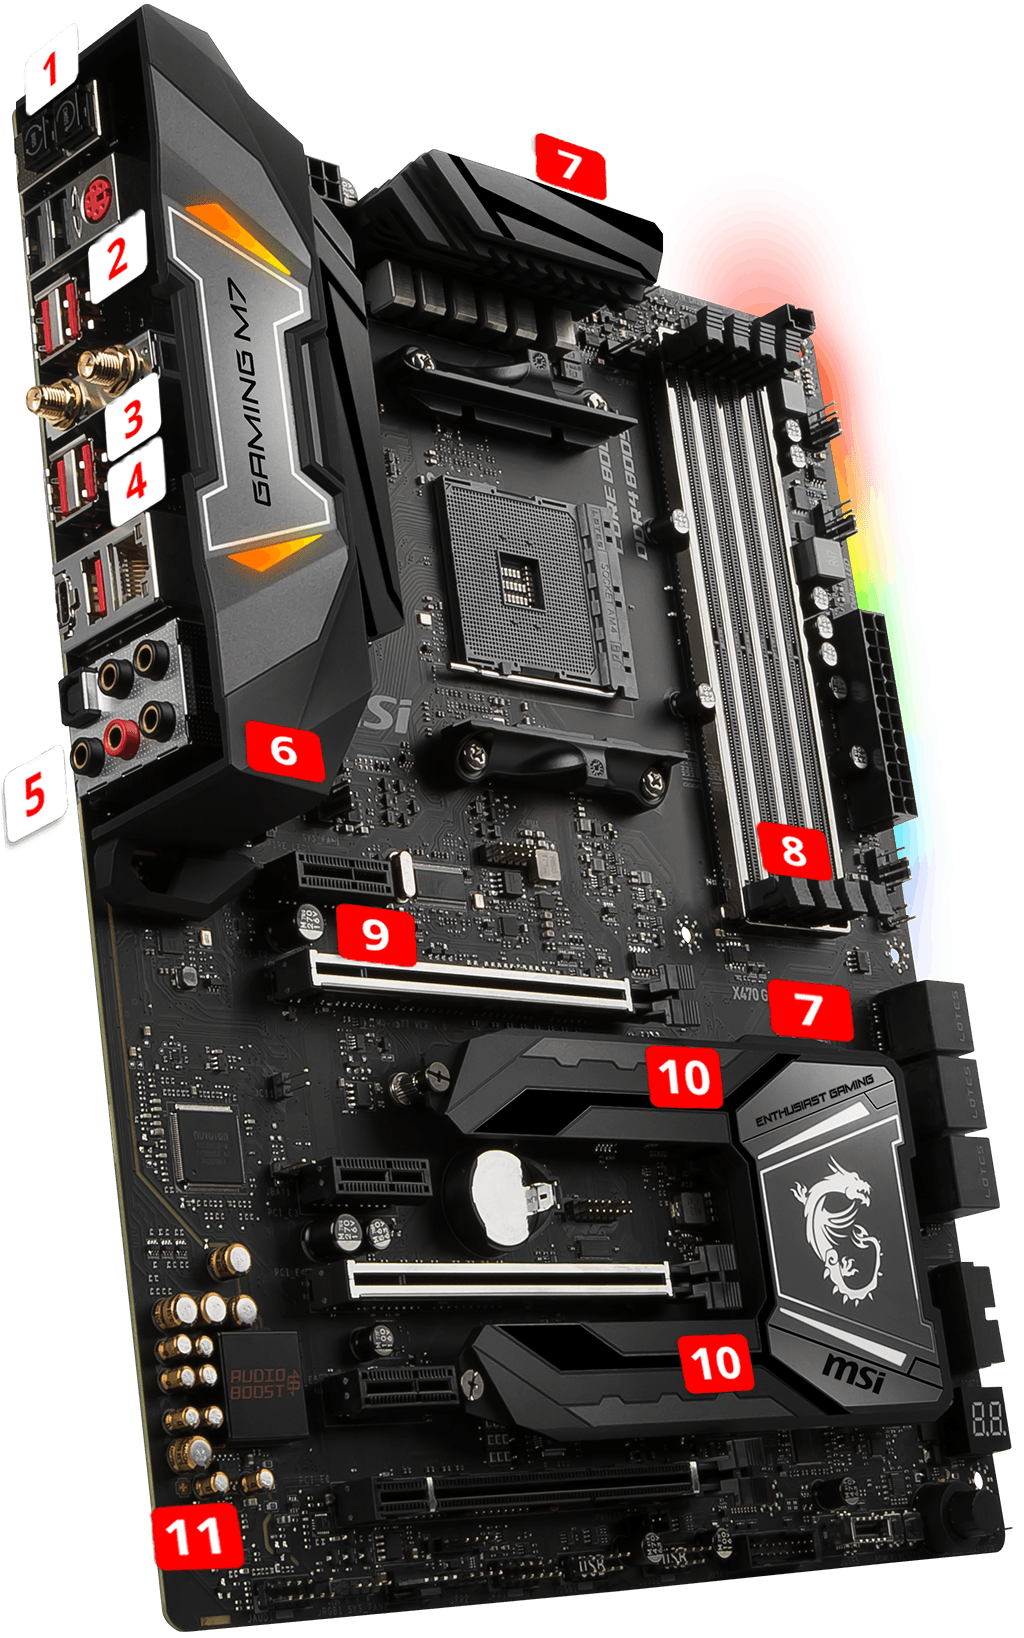 MSI X470 GAMING M7 AC overview